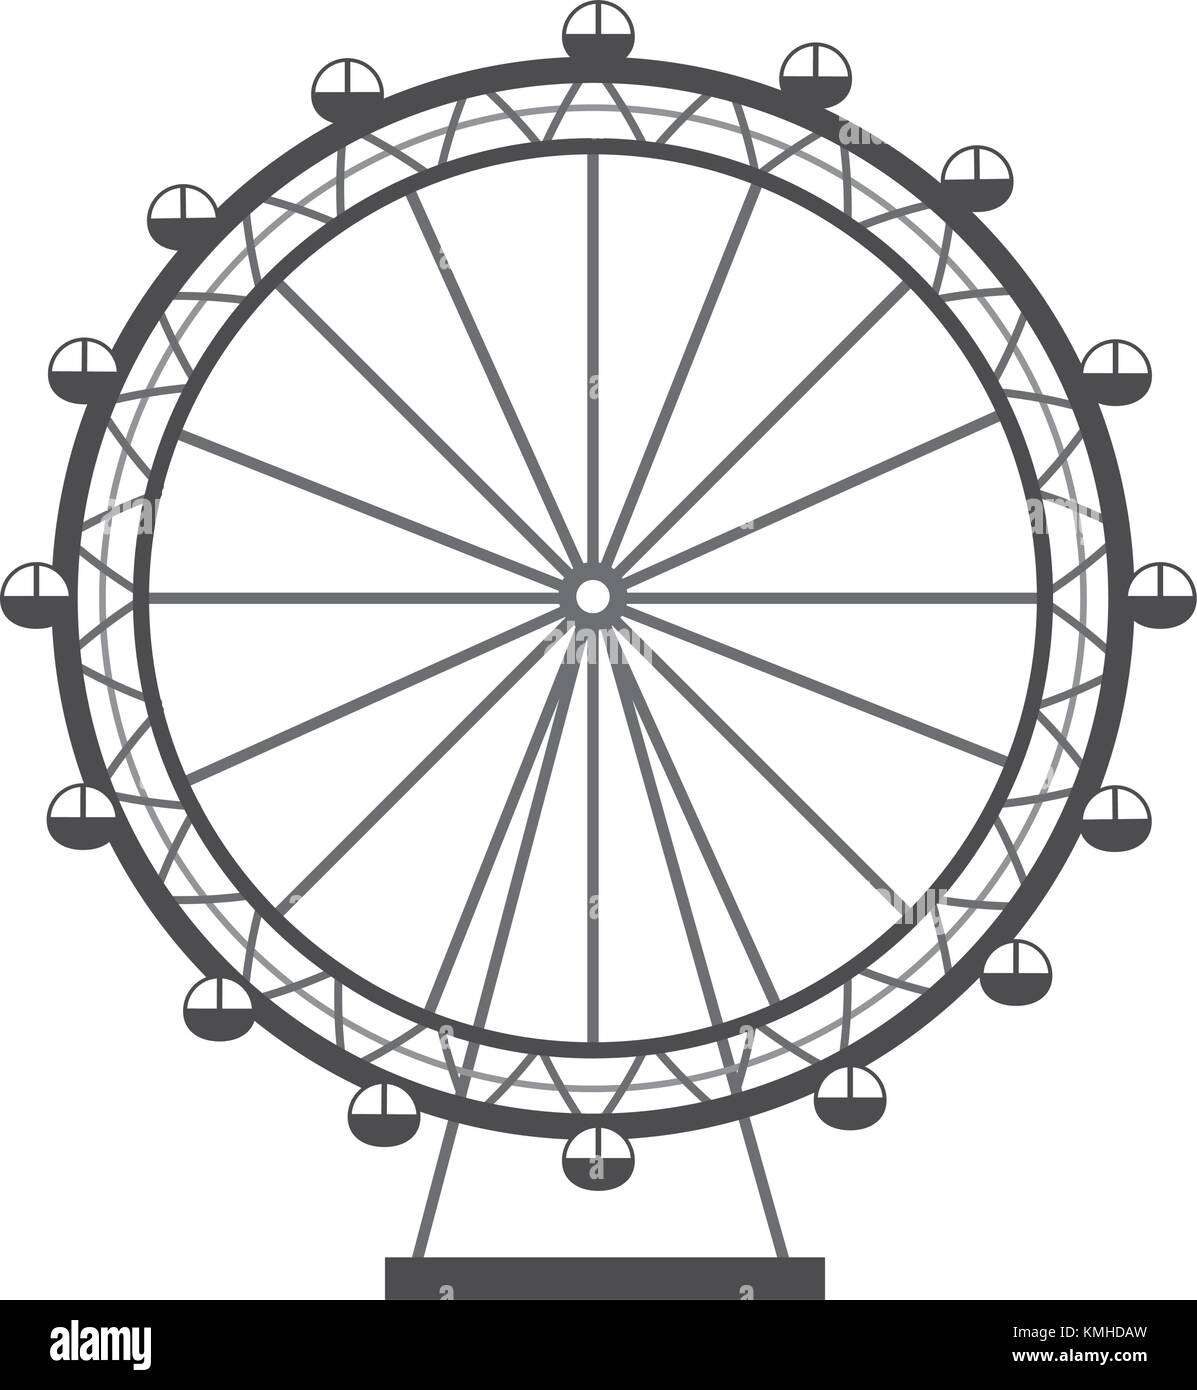 how to draw the london eye